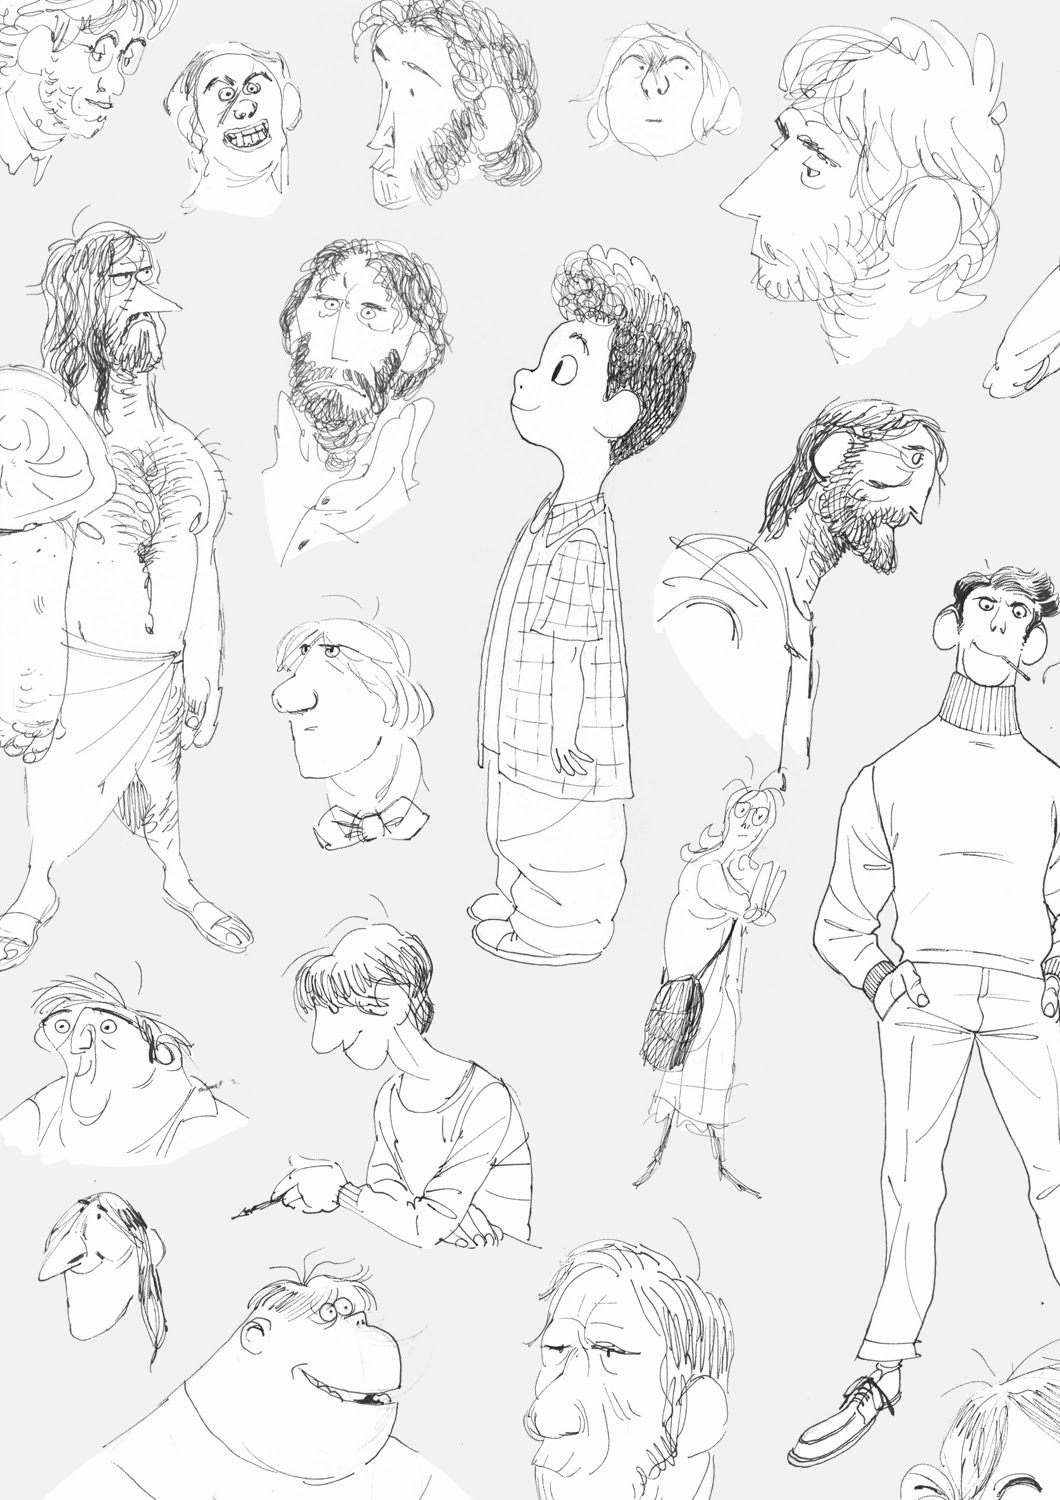 1000+ images about character designs on Pinterest